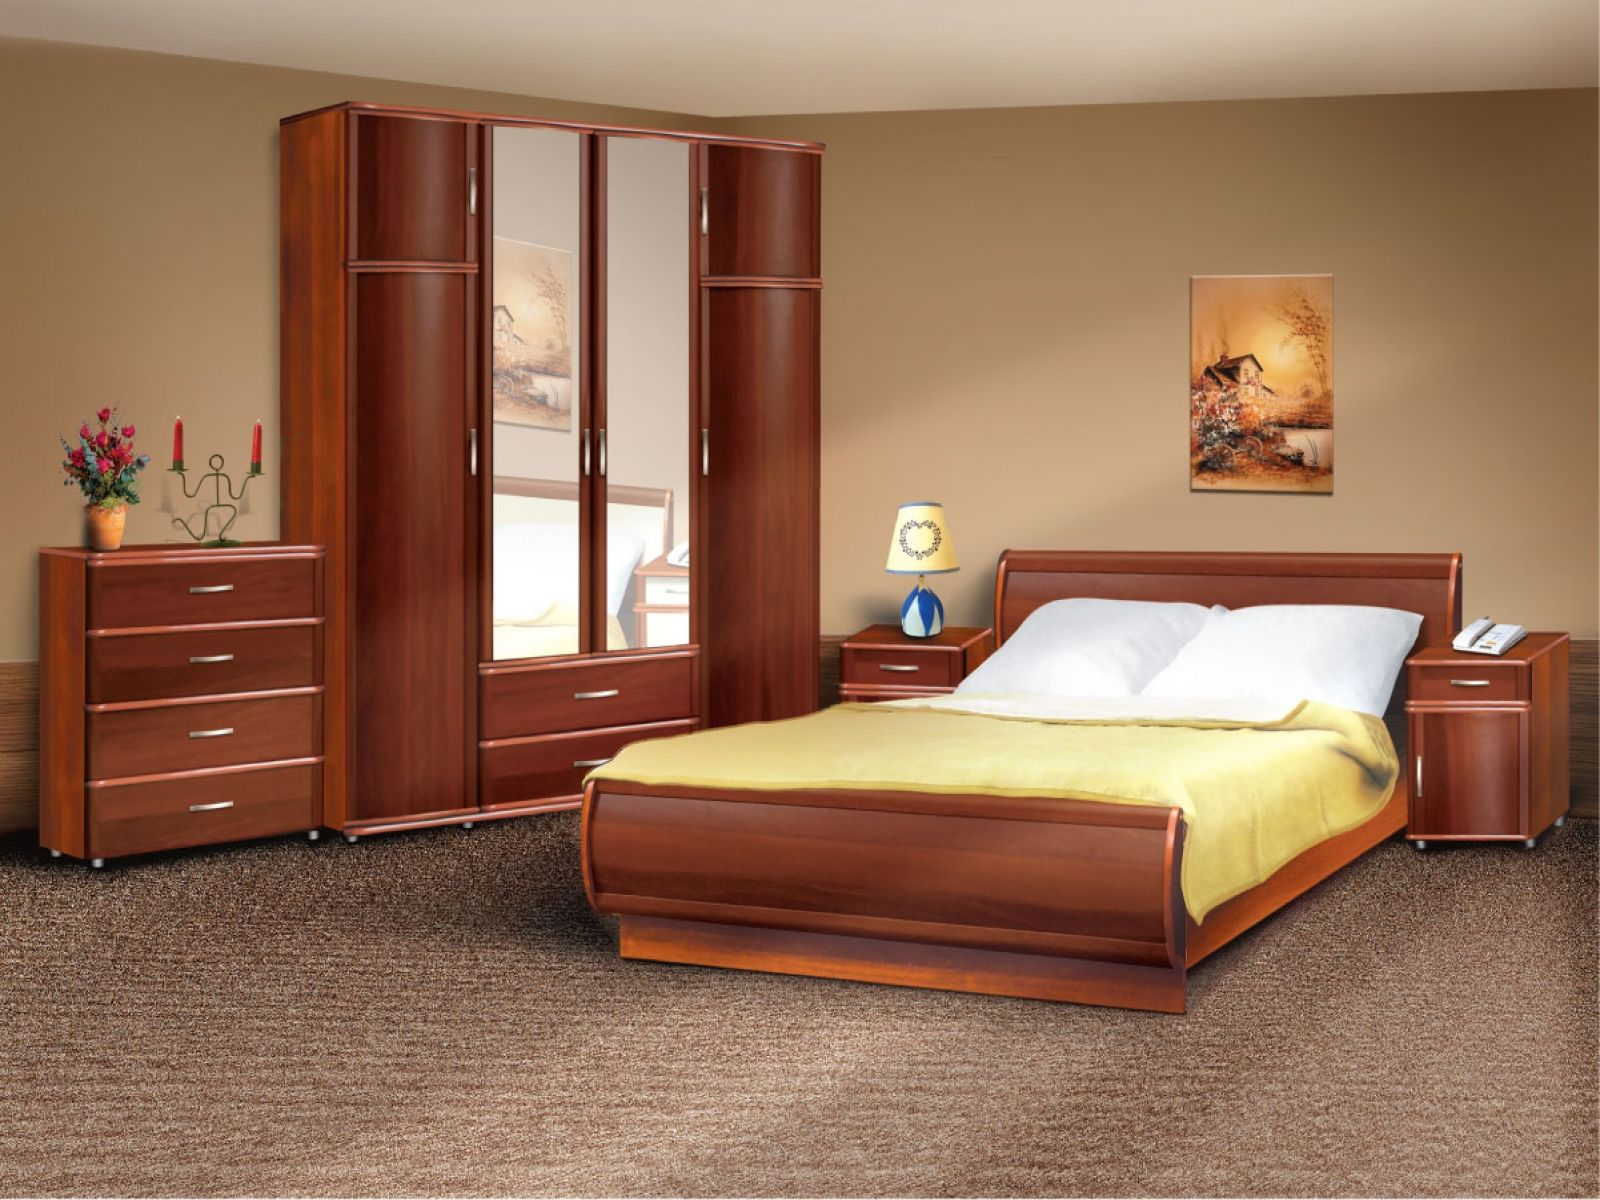 In vogue arc wooden headboard king size bed and double for Modern wooden bedroom designs